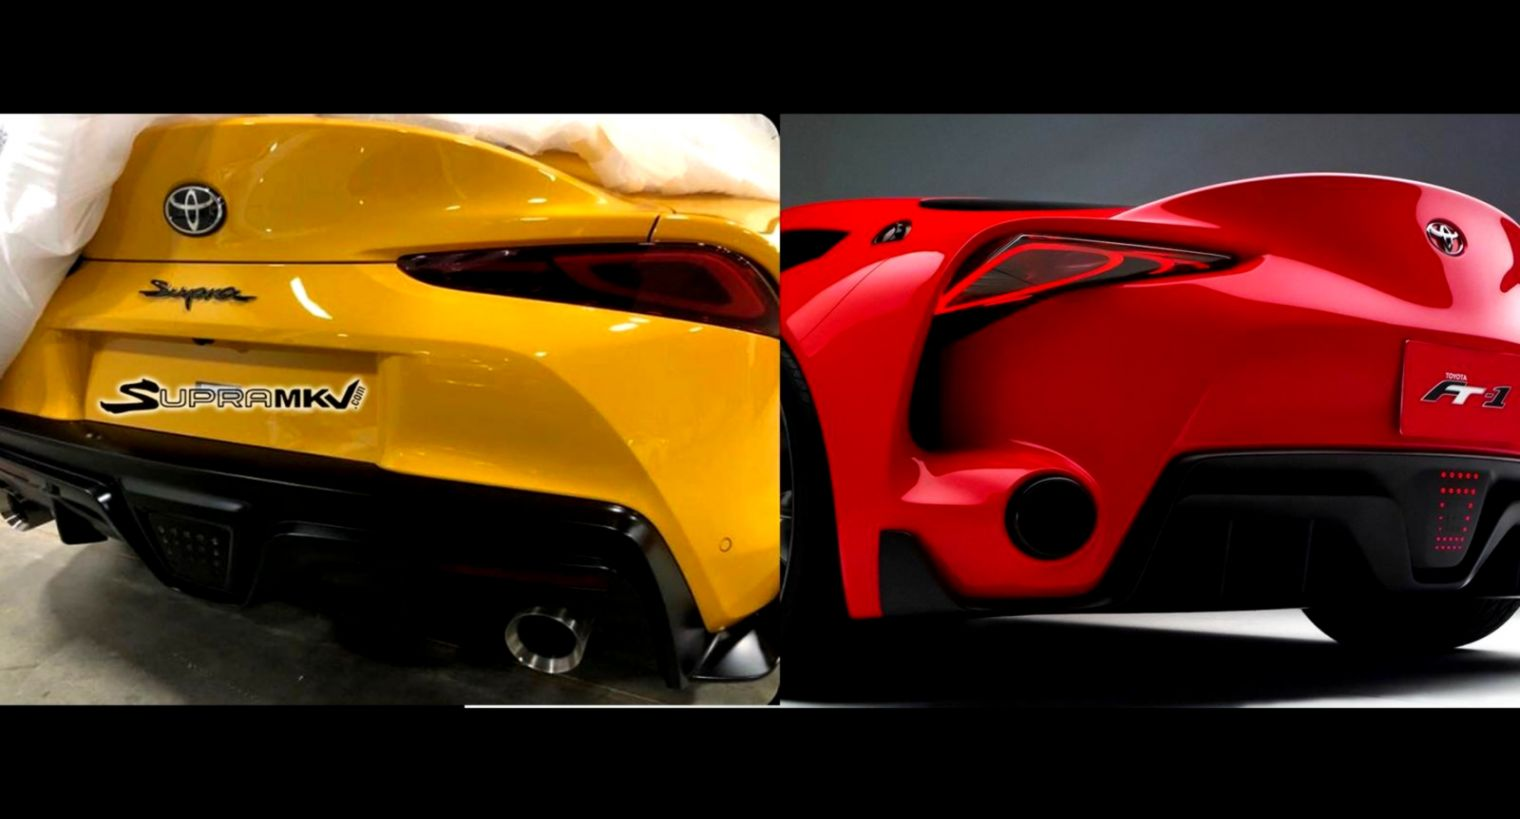 Toyota Ft1 Yellow Vs Red Car Wallpaper Hd Wallpapers Tumblr